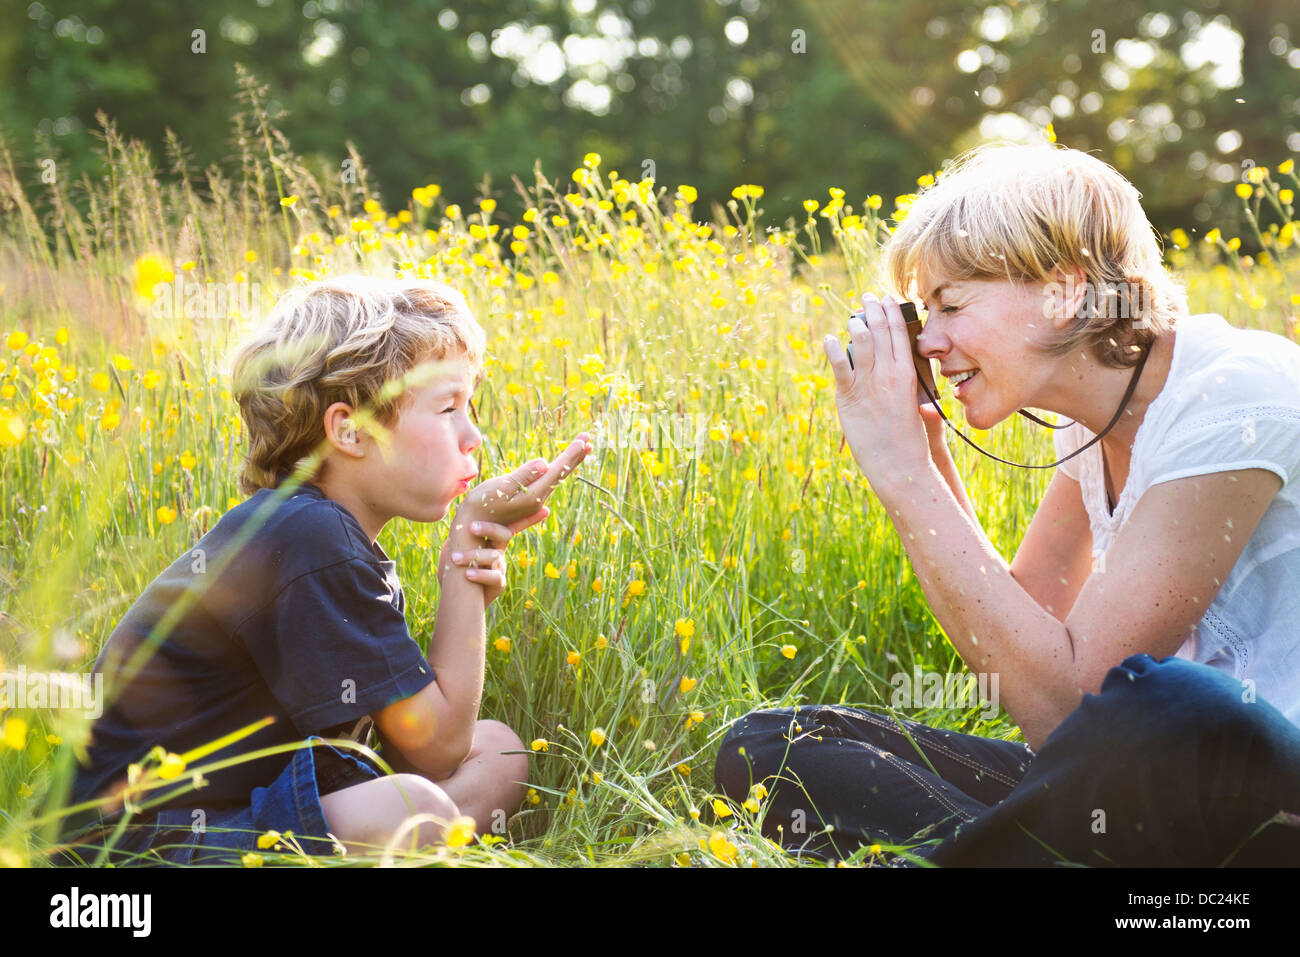 Woman taking photograph of boy blowing kiss - Stock Image